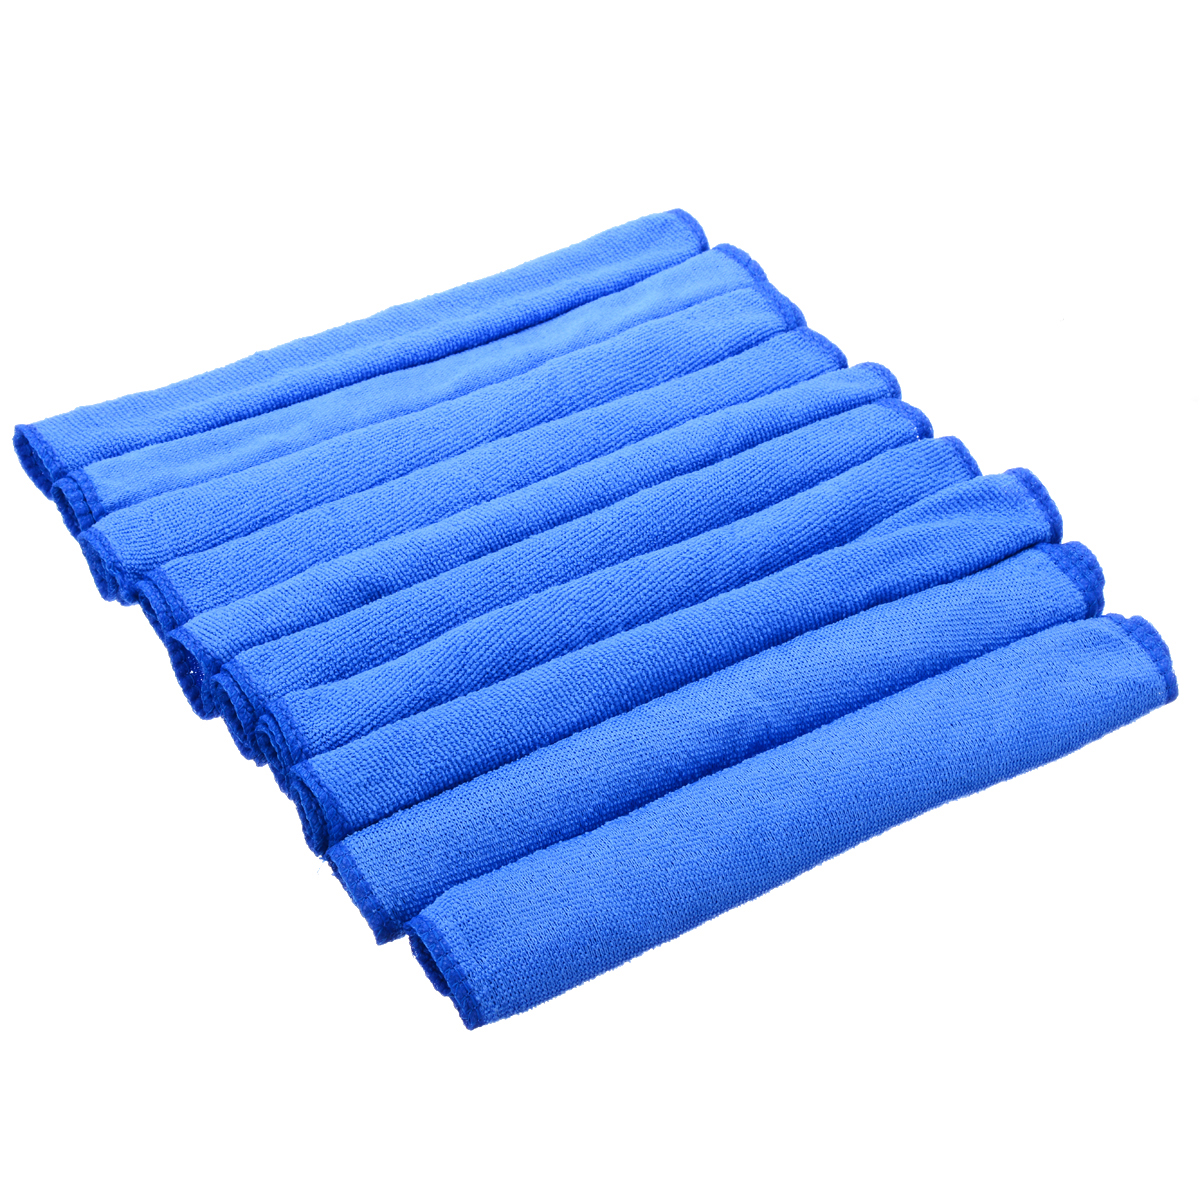 Image 4 - 10pcs Blue Microfiber Cleaning 30*30cm Auto Car Detailing Soft Microfiber Cloths Wash Towel Duster Home Cleaning Tools-in Car Washer from Automobiles & Motorcycles